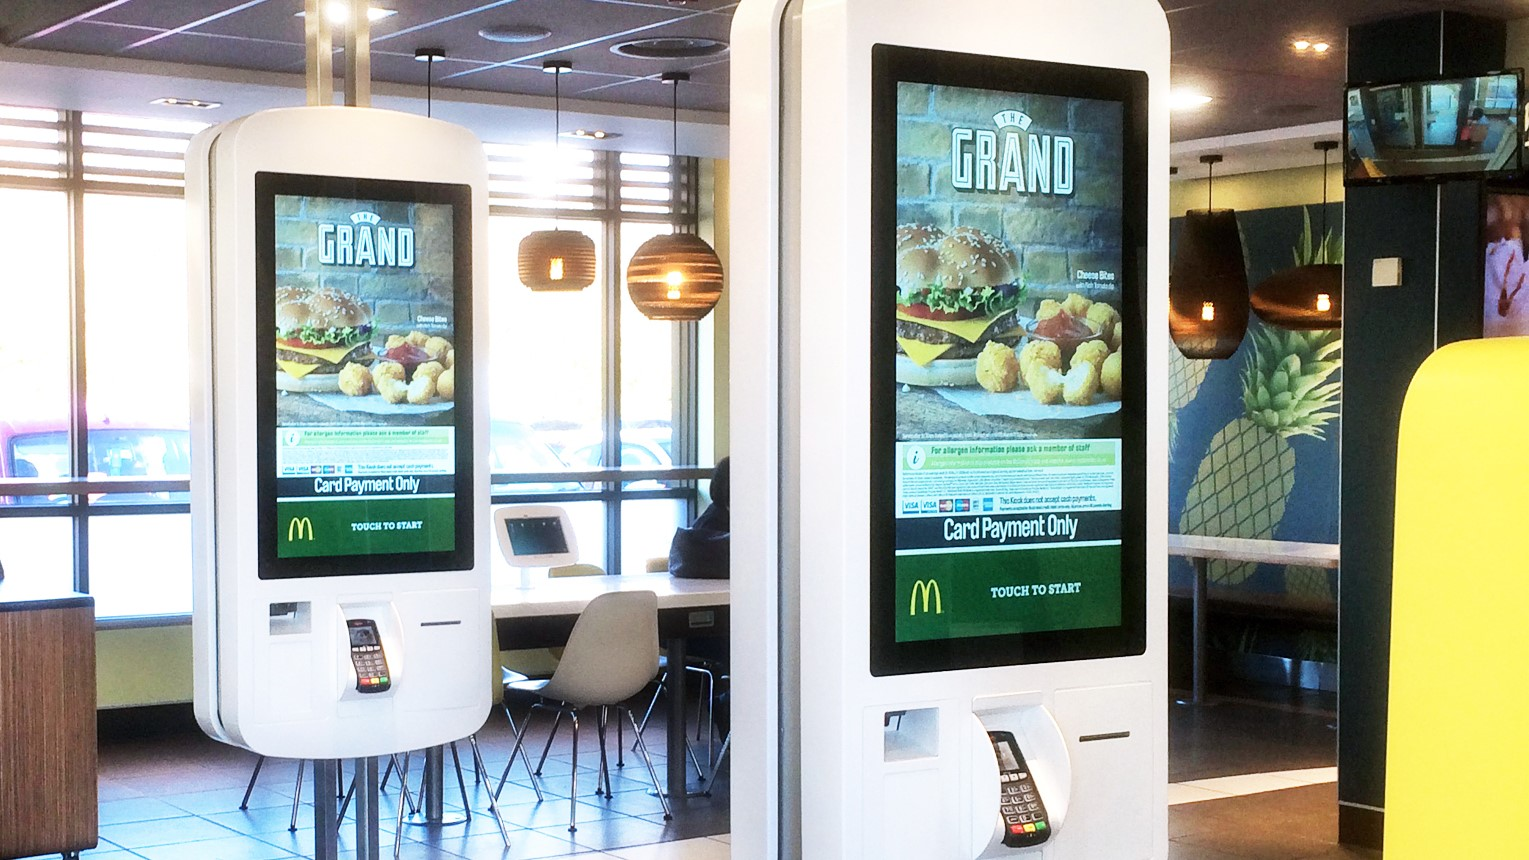 McDonalds Self Service - Evoke